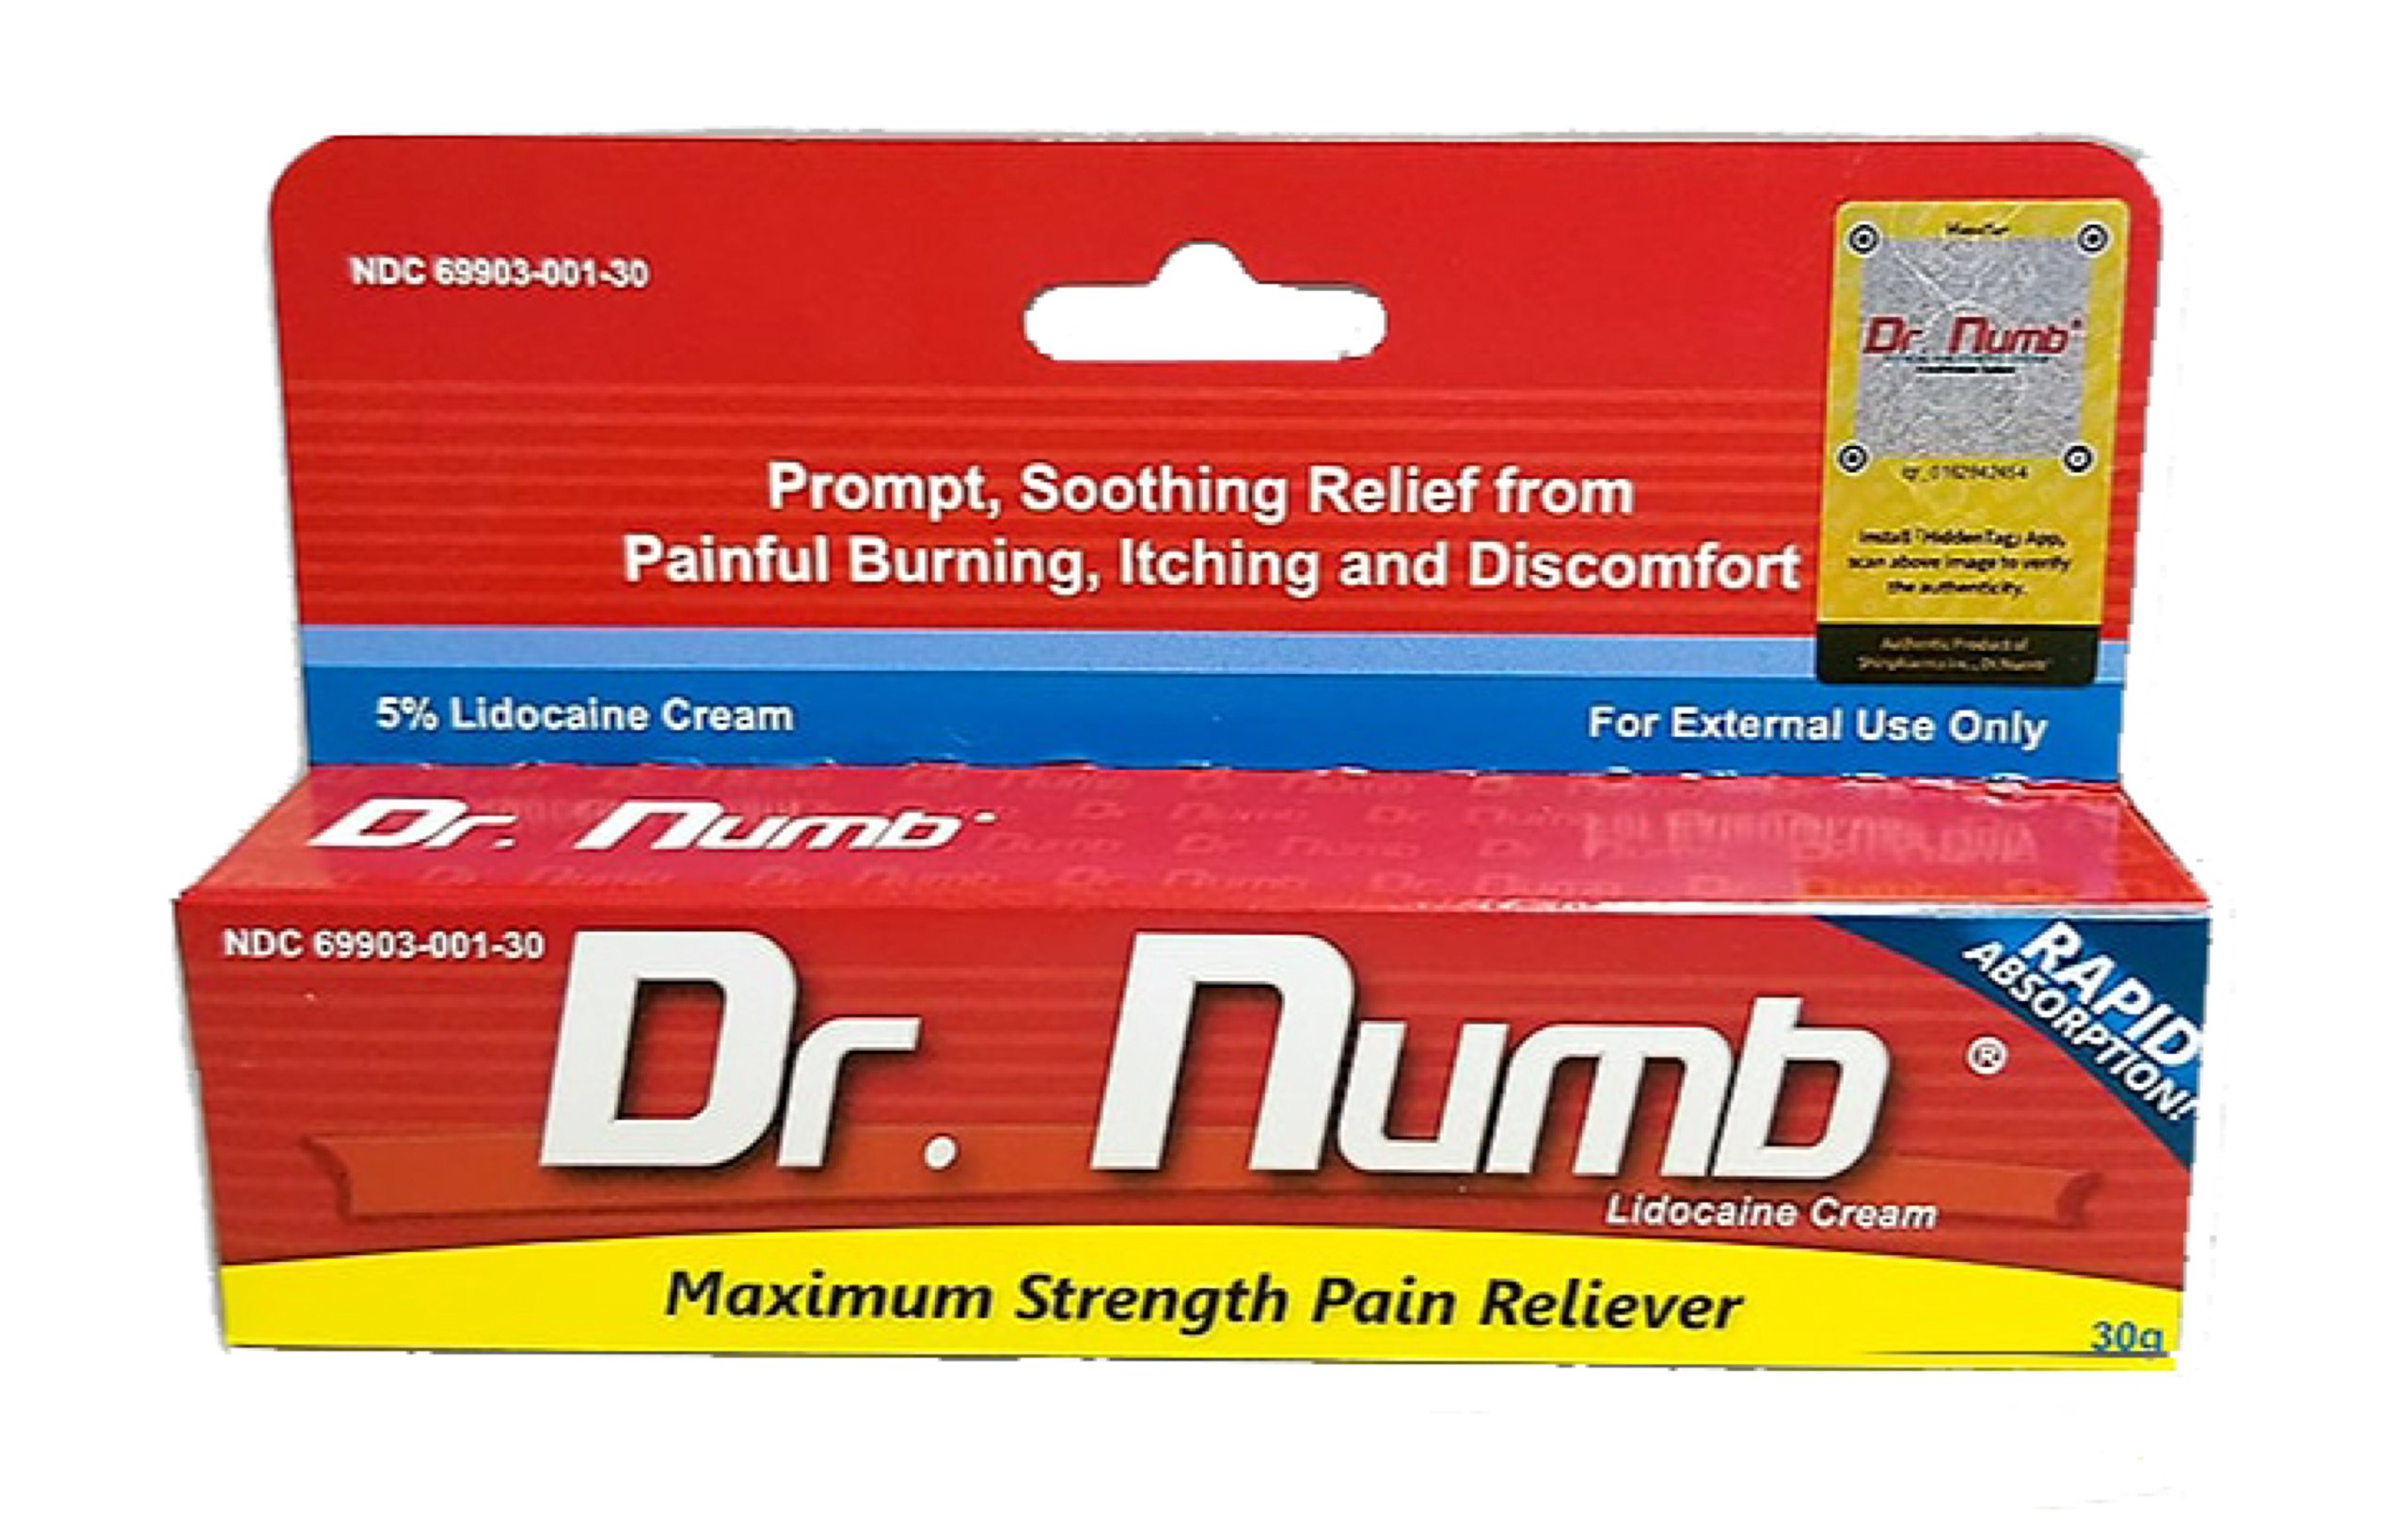 1 Tube of Dr. Numb Maximum Topical Anesthetic Anorectal Cream, Lidocaine 5% ~ Net Wt 1 Oz (30g) by Dr. Numb